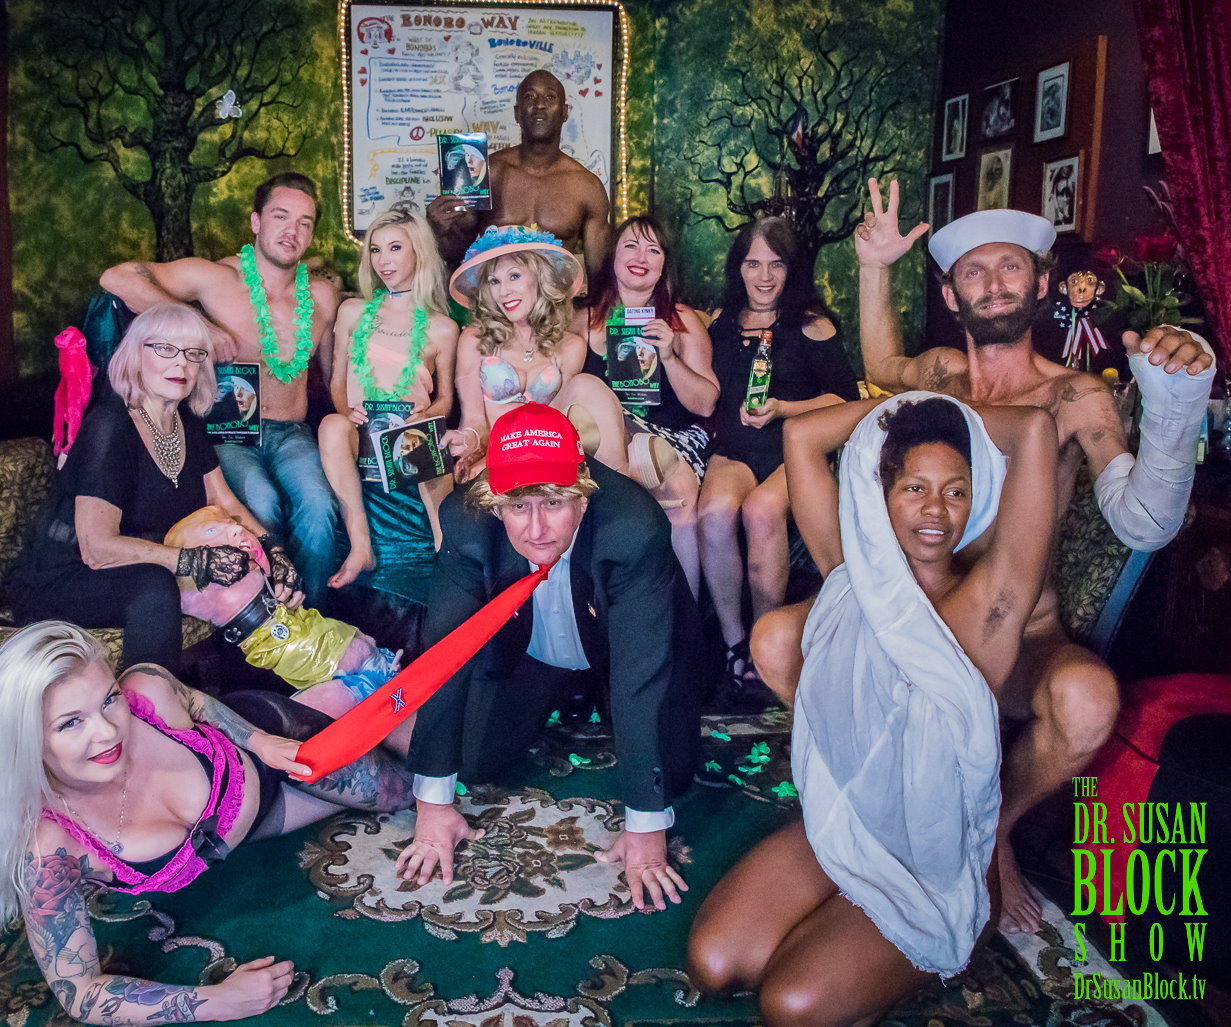 Bonoboville Summit: Gypsy Bonobo, Sheree Rose,Kyle Mason, Kenzie Reeves, Dr. Suzy,  tRUMP, Heather Claus, Jacquie Blu, Chef Be*Live, Daniele Watts. Photo: Jux Lii